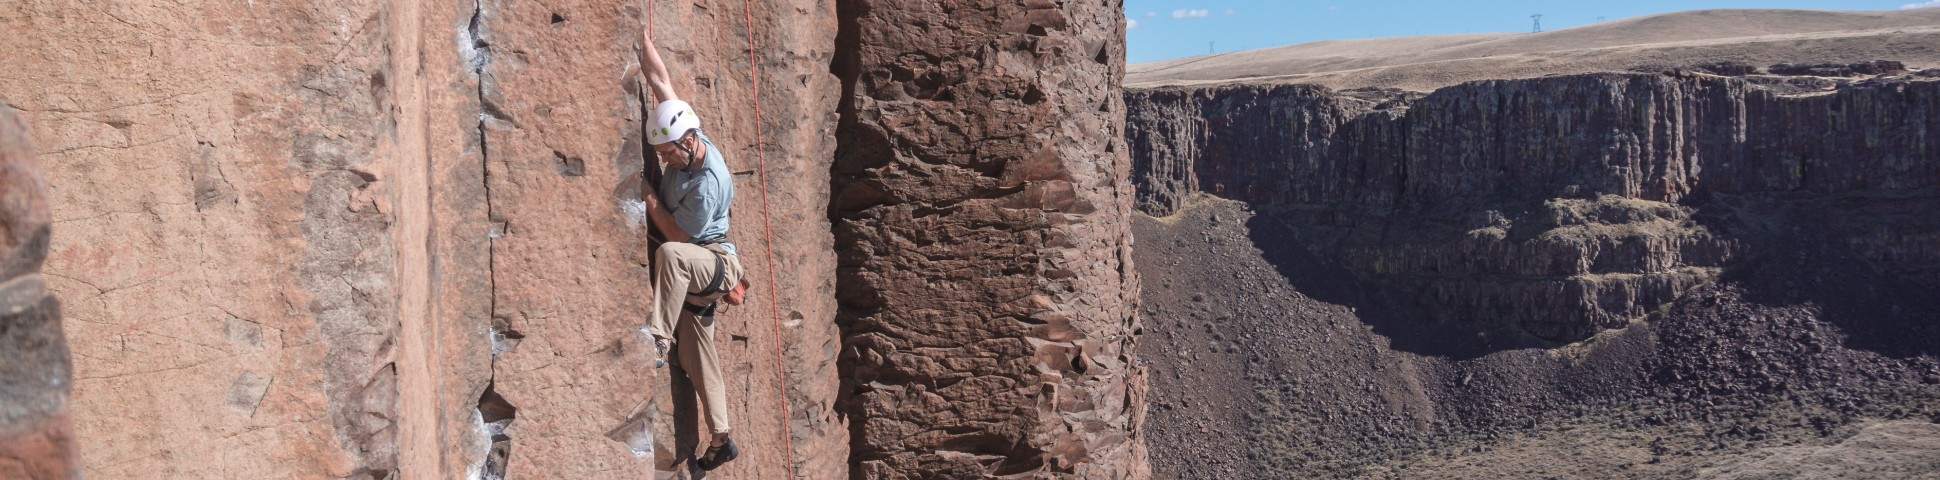 Climber ascending on a steep rock wall in a valley